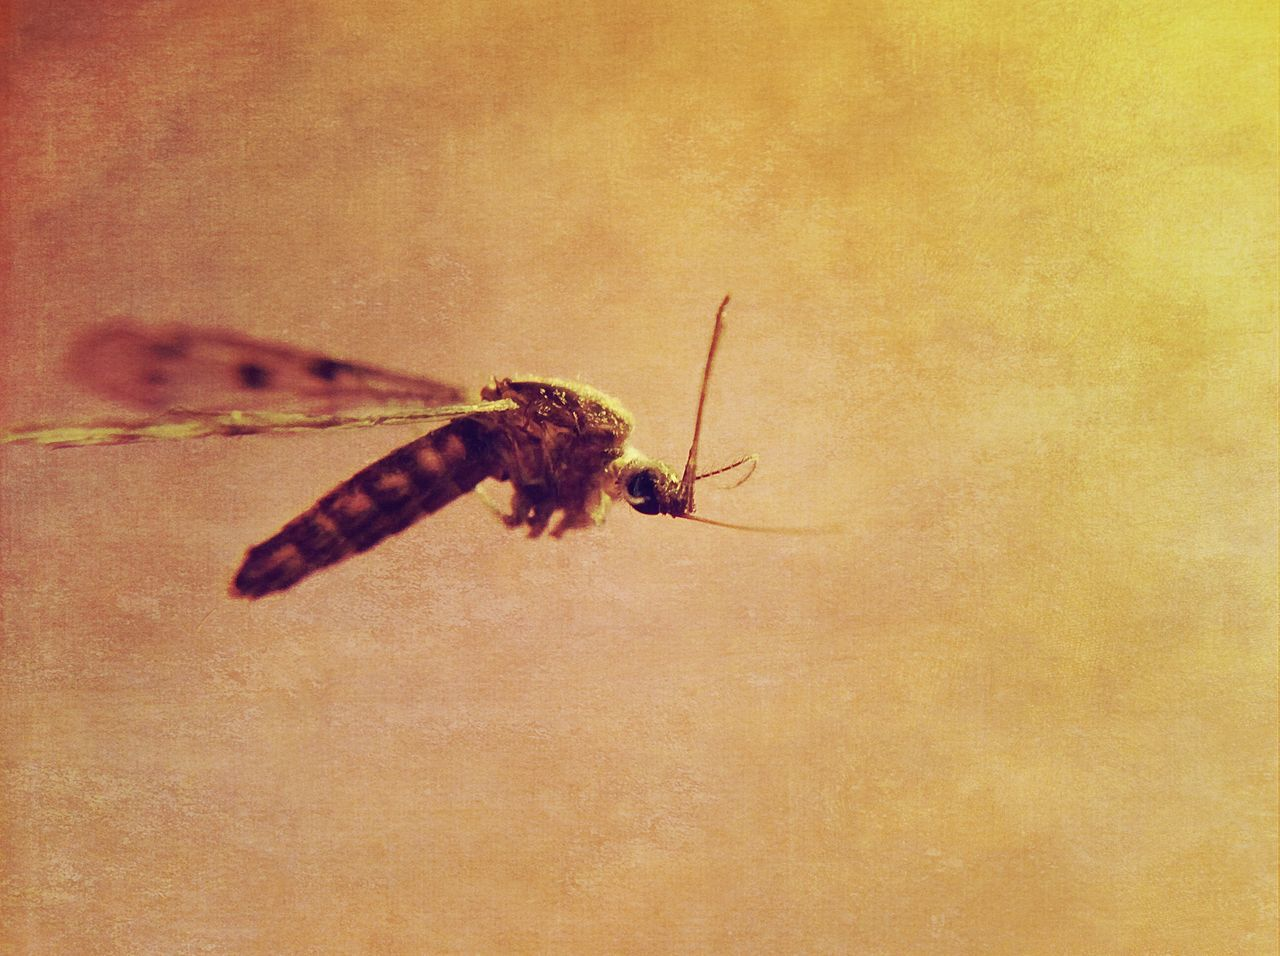 insect, one animal, animal themes, animals in the wild, no people, close-up, day, outdoors, nature